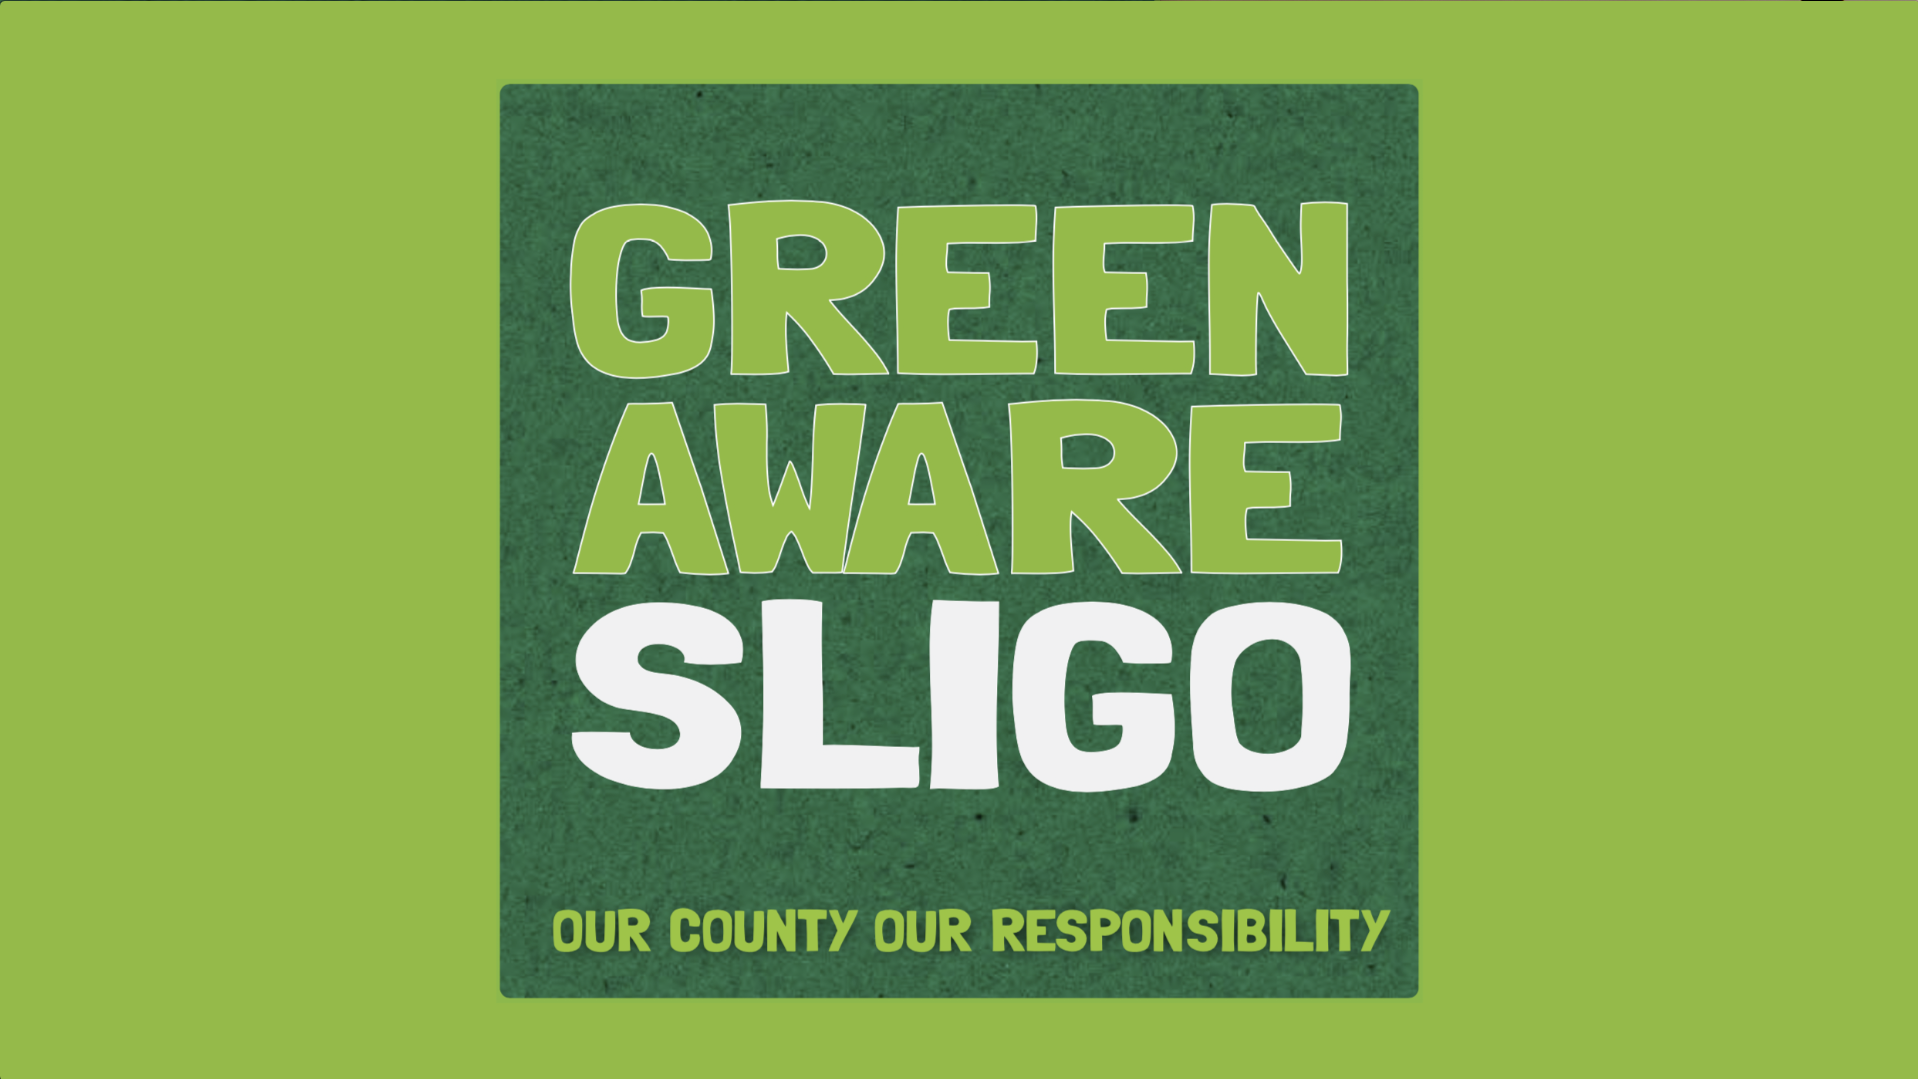 Blog 1 - When did Green Aware Sligo Begin?